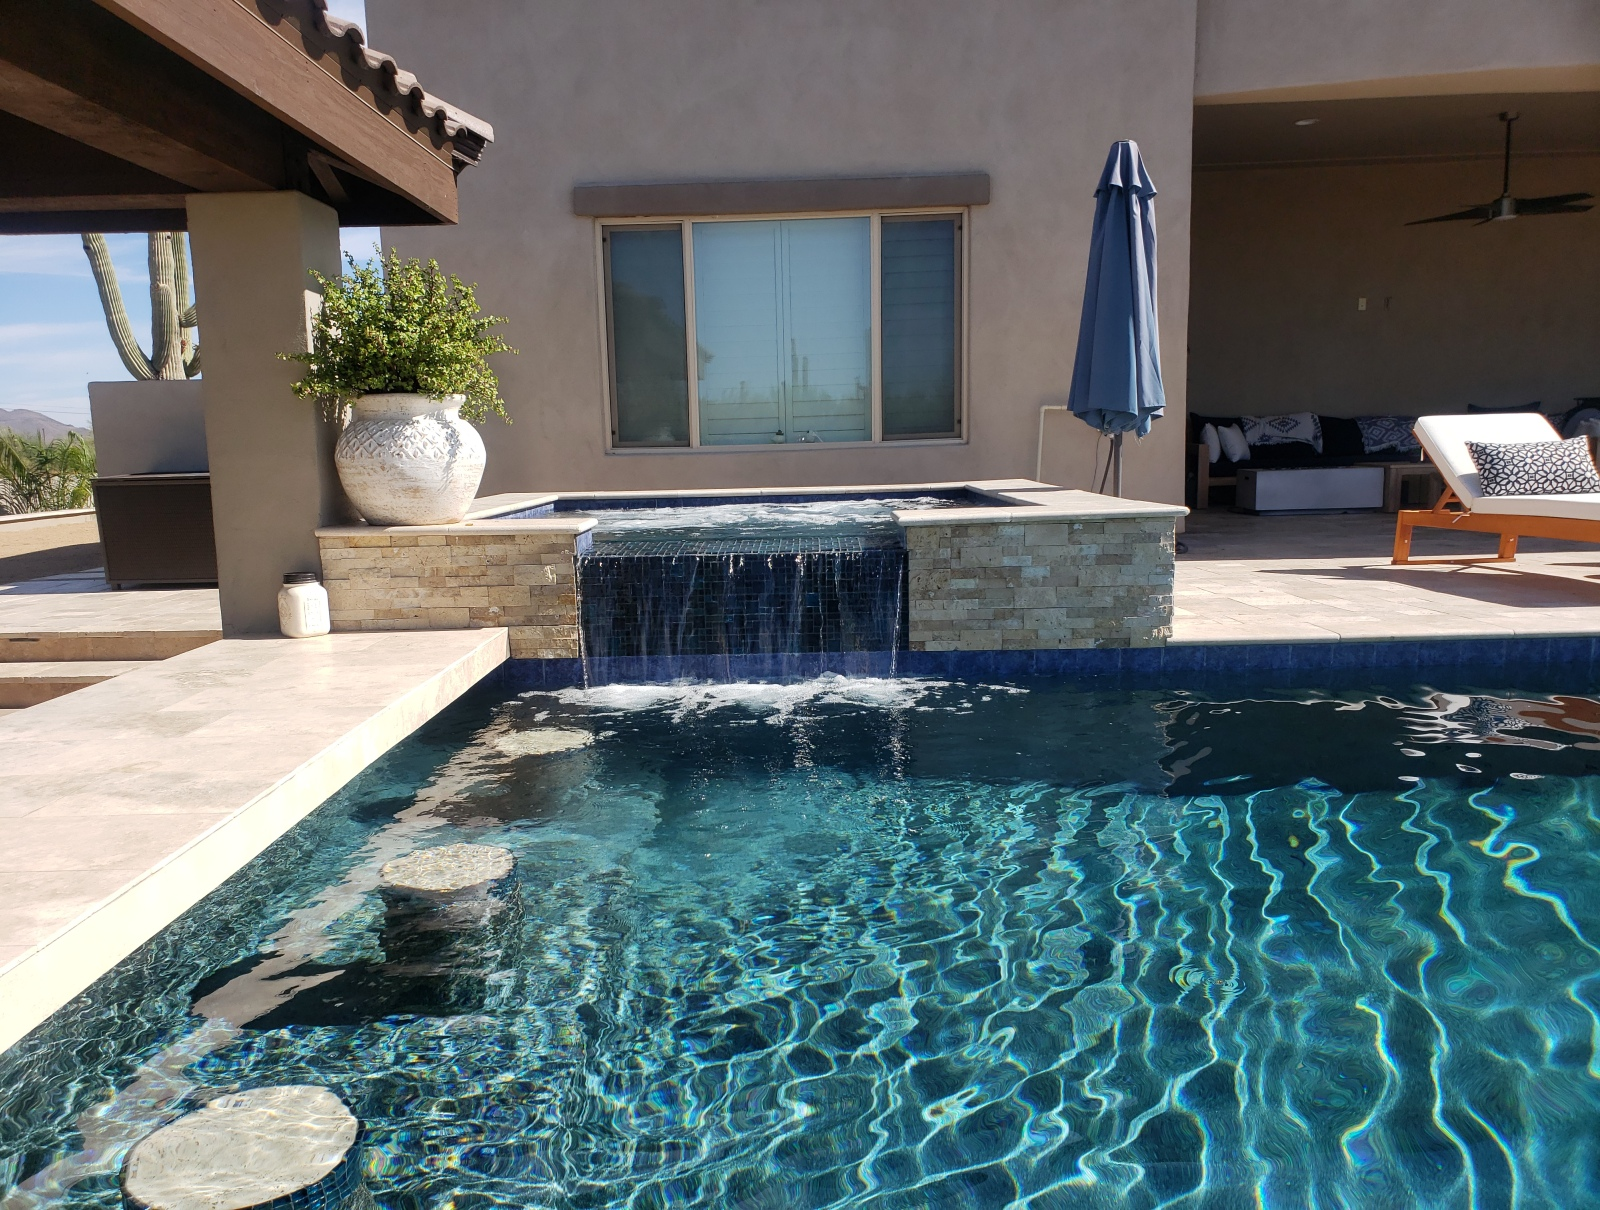 Midnight blue tiled spa spill-over doubles as a waterwall water feature at the end of the 3-stool swim bar. Another beautiful project by Desert Crest, pool builders - Phoenix, AZ.